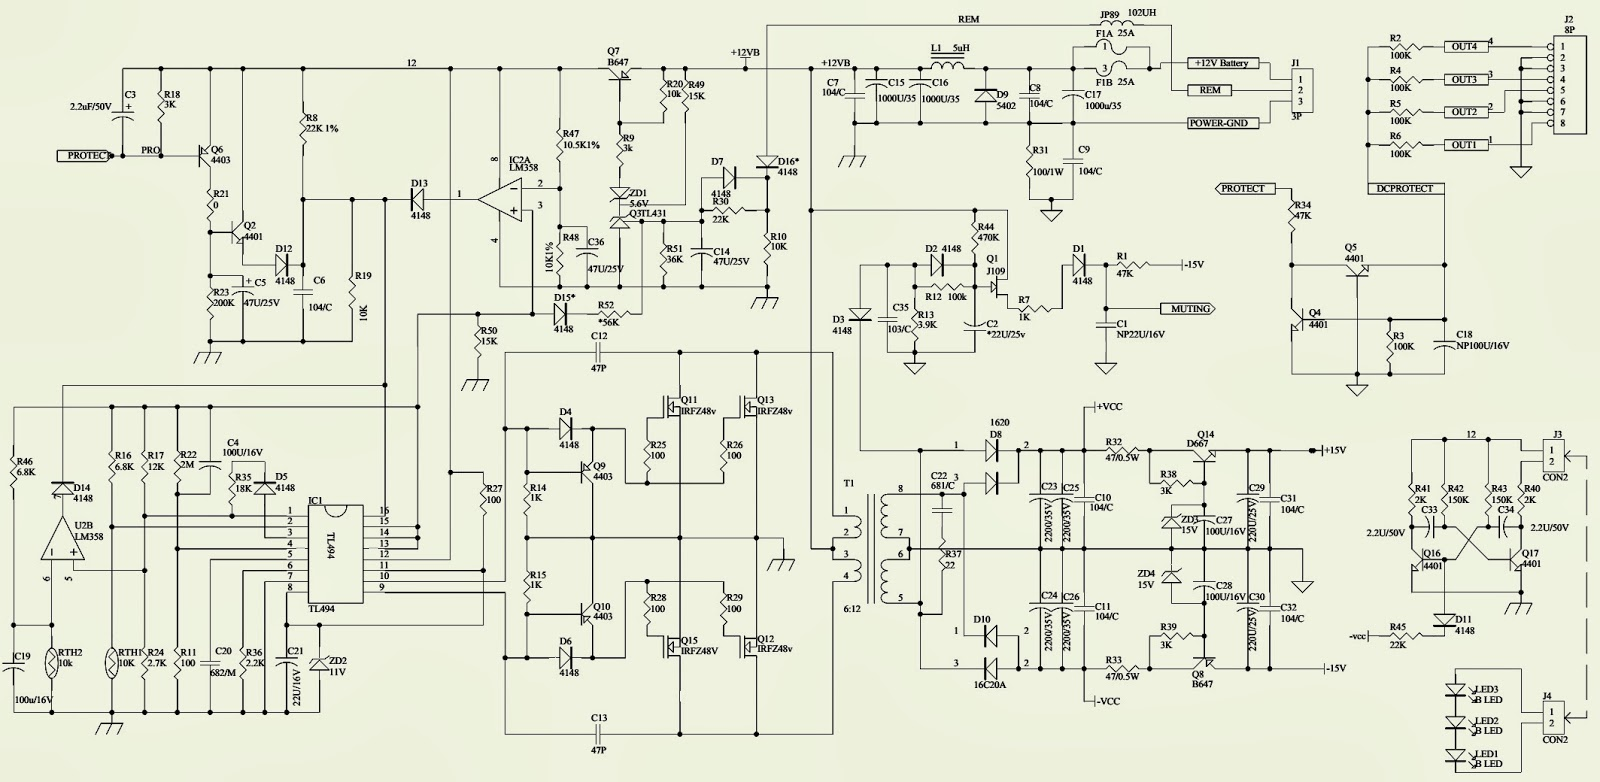 Jbl Amplifier Wiring Diagram Library For 2007 Camry Amp Car Amplifiers Click On The Schematics To Zoom In